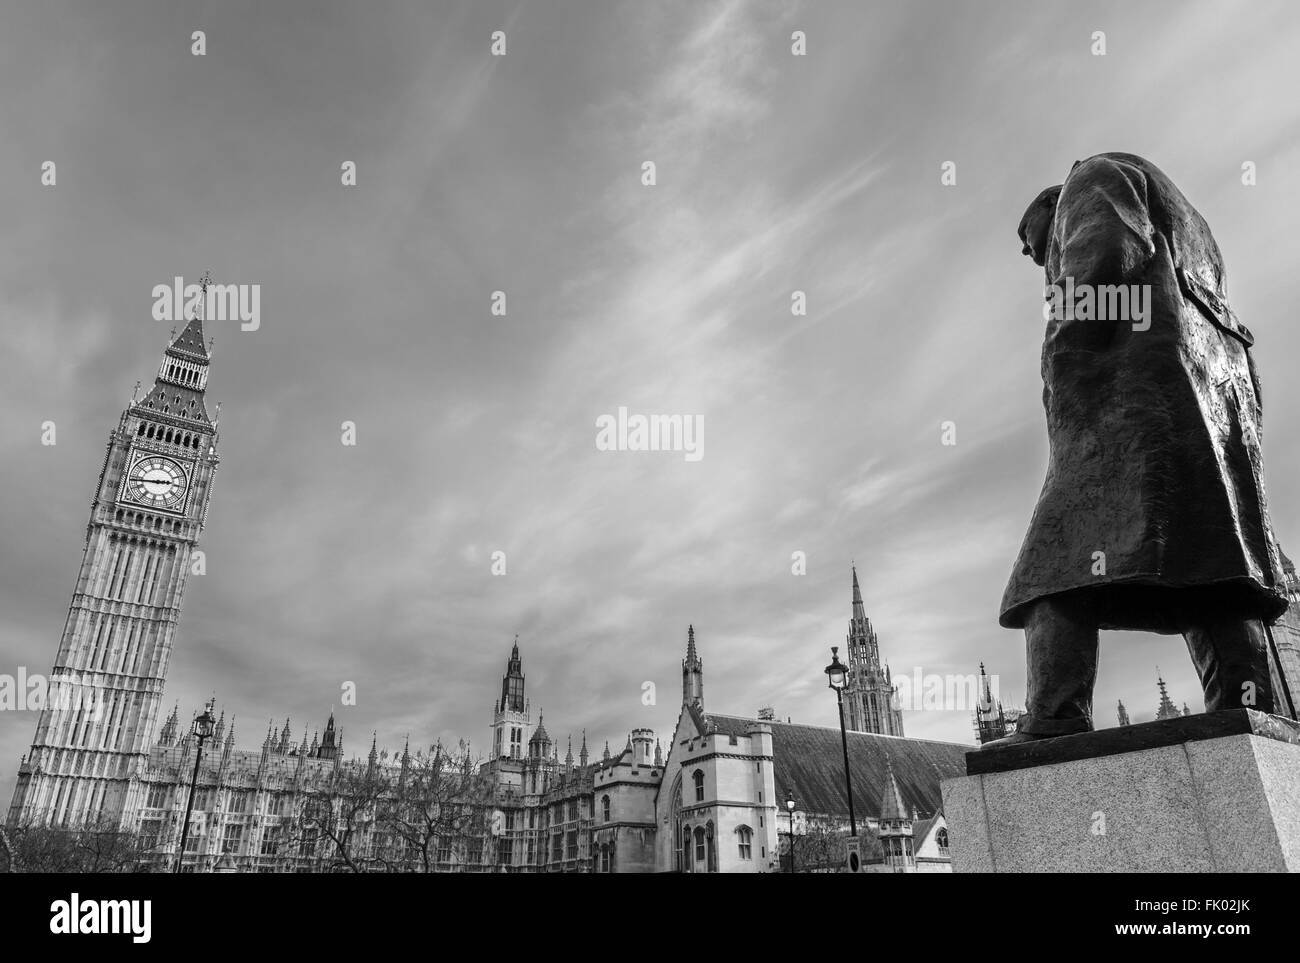 Statue of Sir Winston Churchill with the Palace of Westminster behind, Parliament Square, Westminster, London, England, - Stock Image